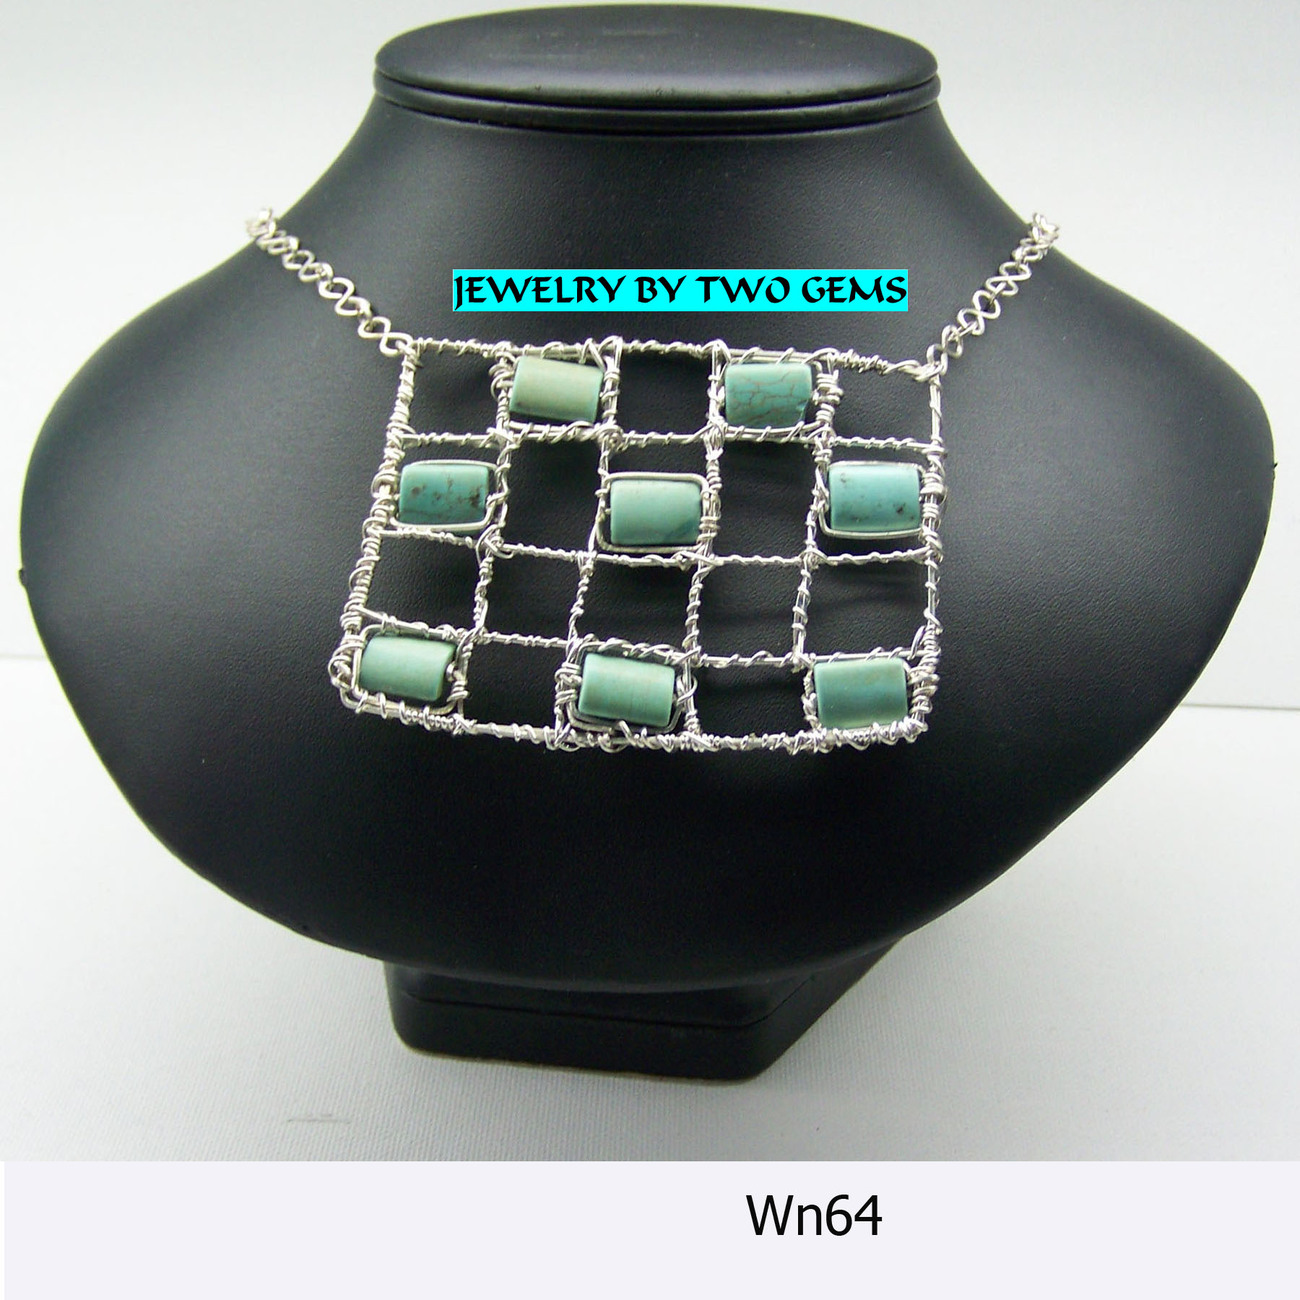 Jewelry By Two Gems Sterling Silver Necklace with Turquoise Rectangle (WN64)